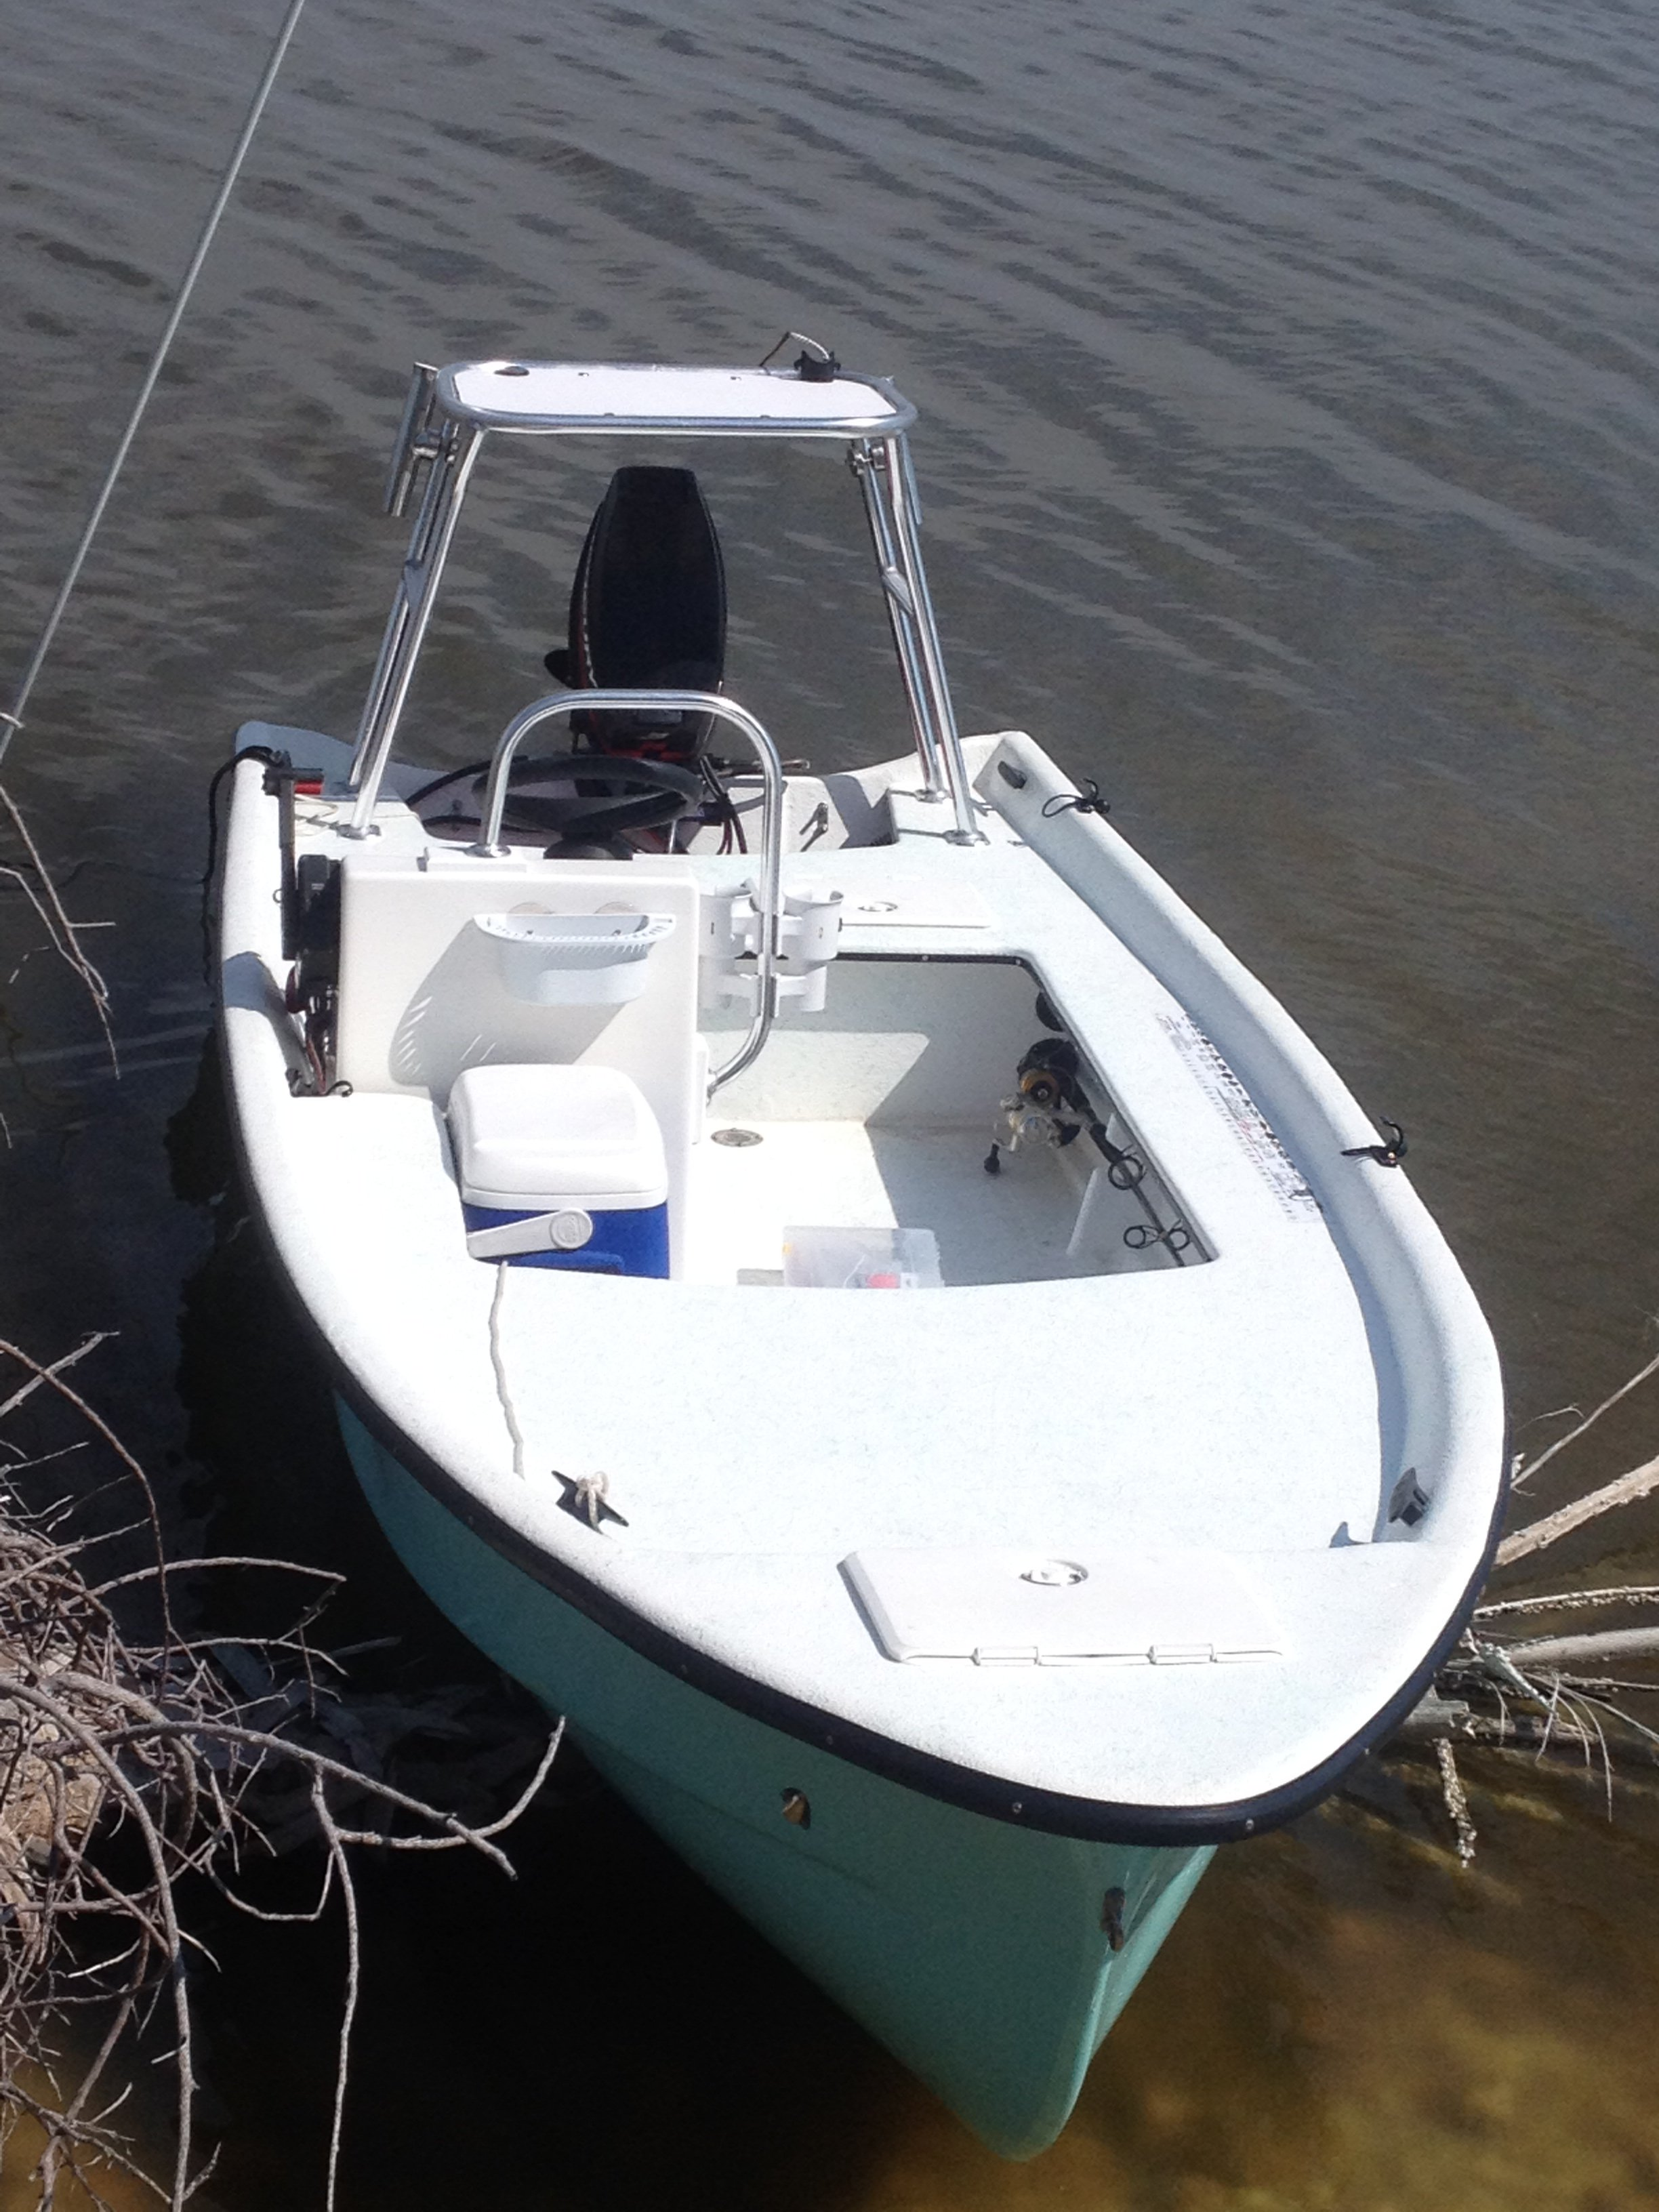 14' Custom Johnson Skiff Conversion | Microskiff - Dedicated